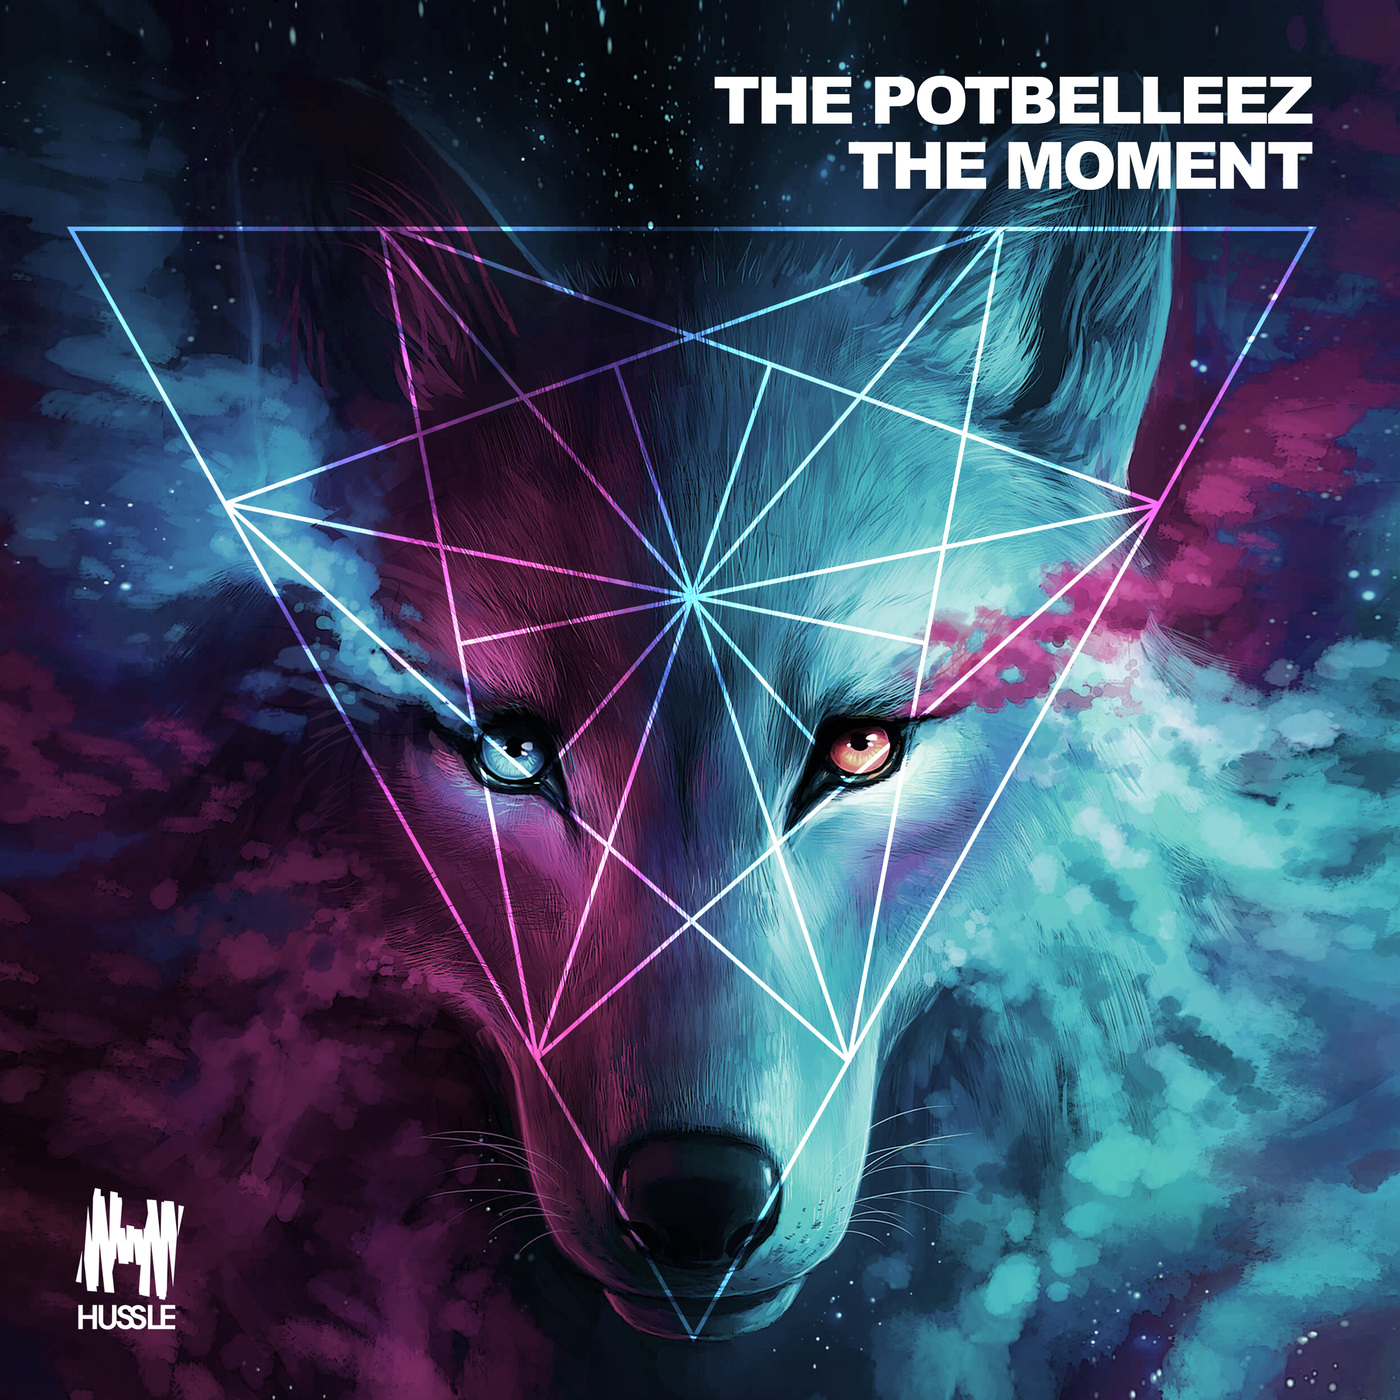 The Potbelleez - The Moment (EXTENDED) [HUSSYCD6469B]